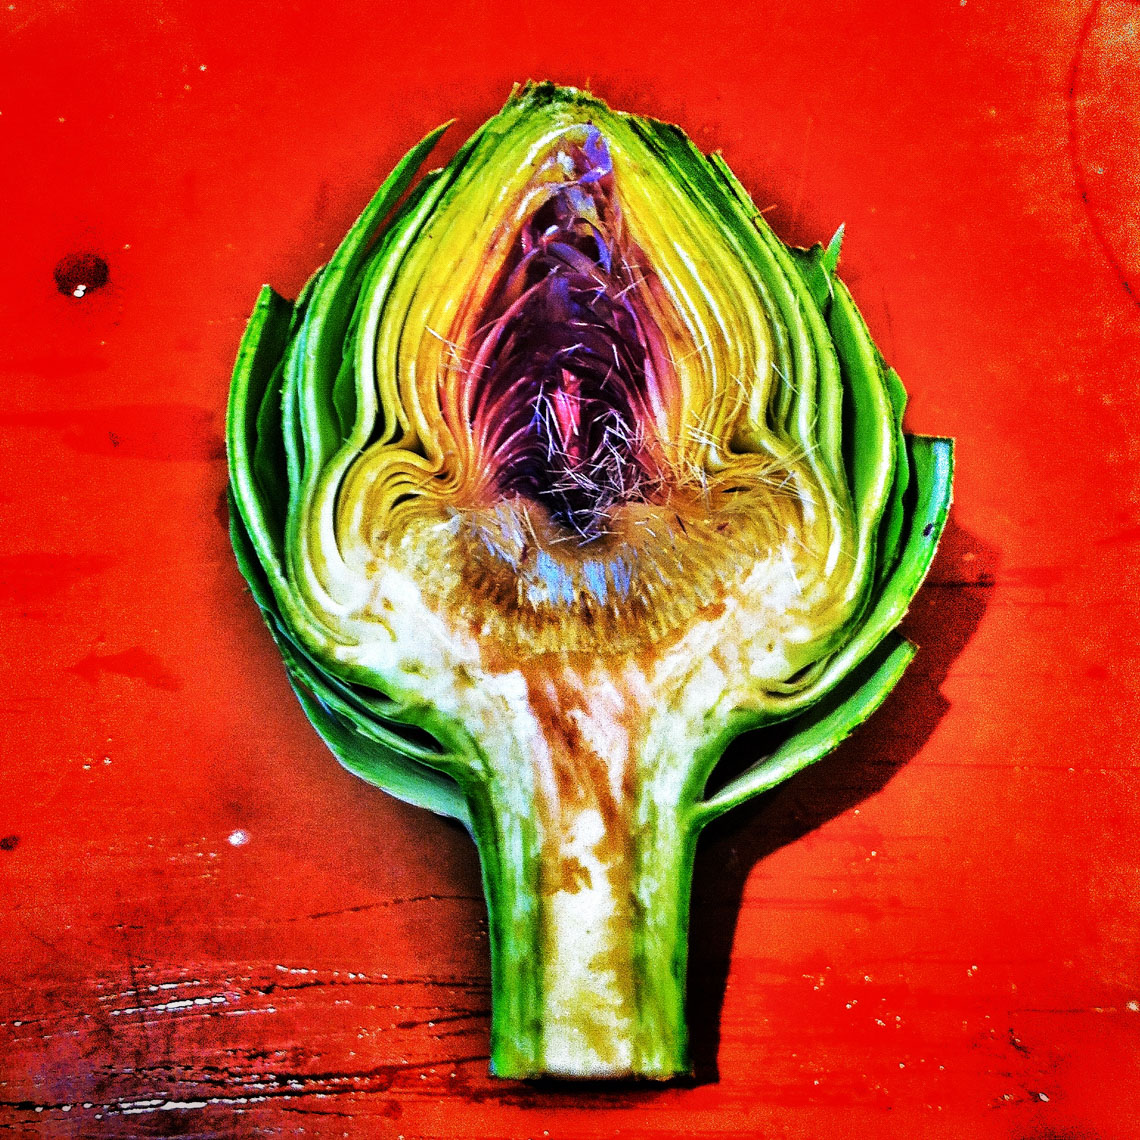 Cross Section of an Artichoke